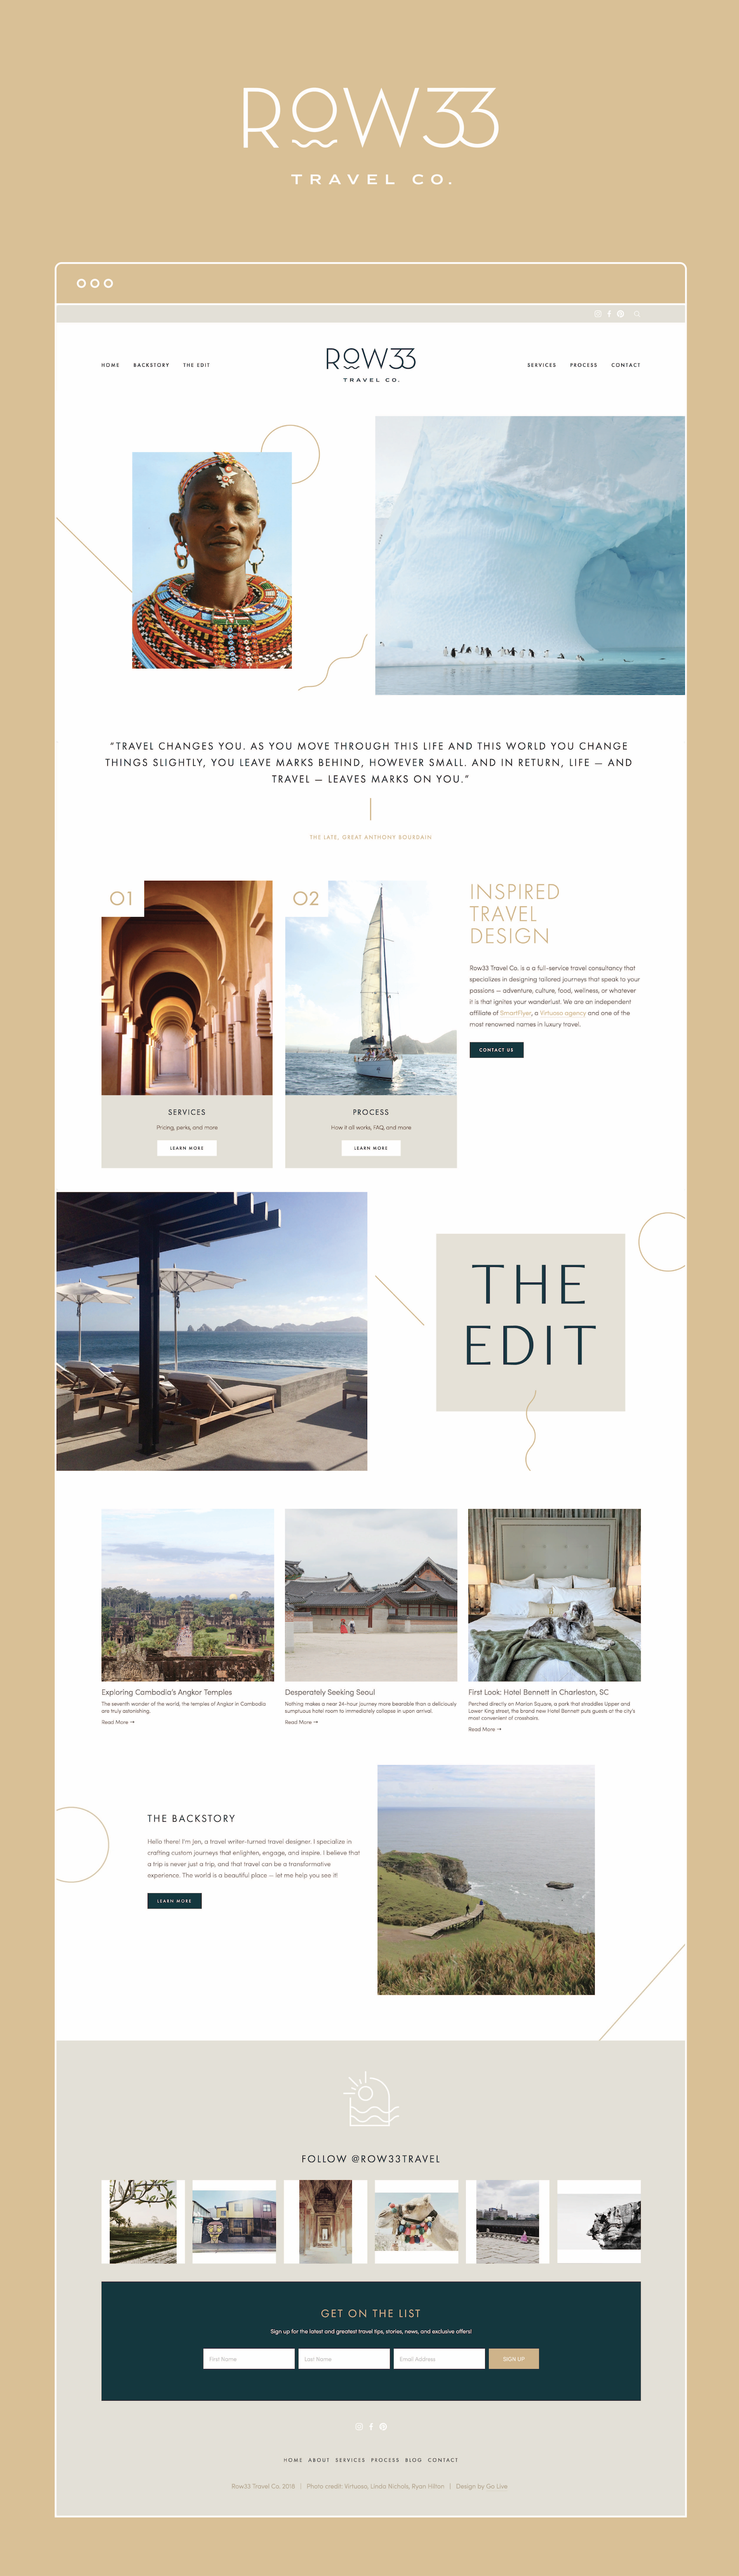 Minimal, Organic, Travel-Inspired Squarespace Website Design For Row33 Travel | By GoLive